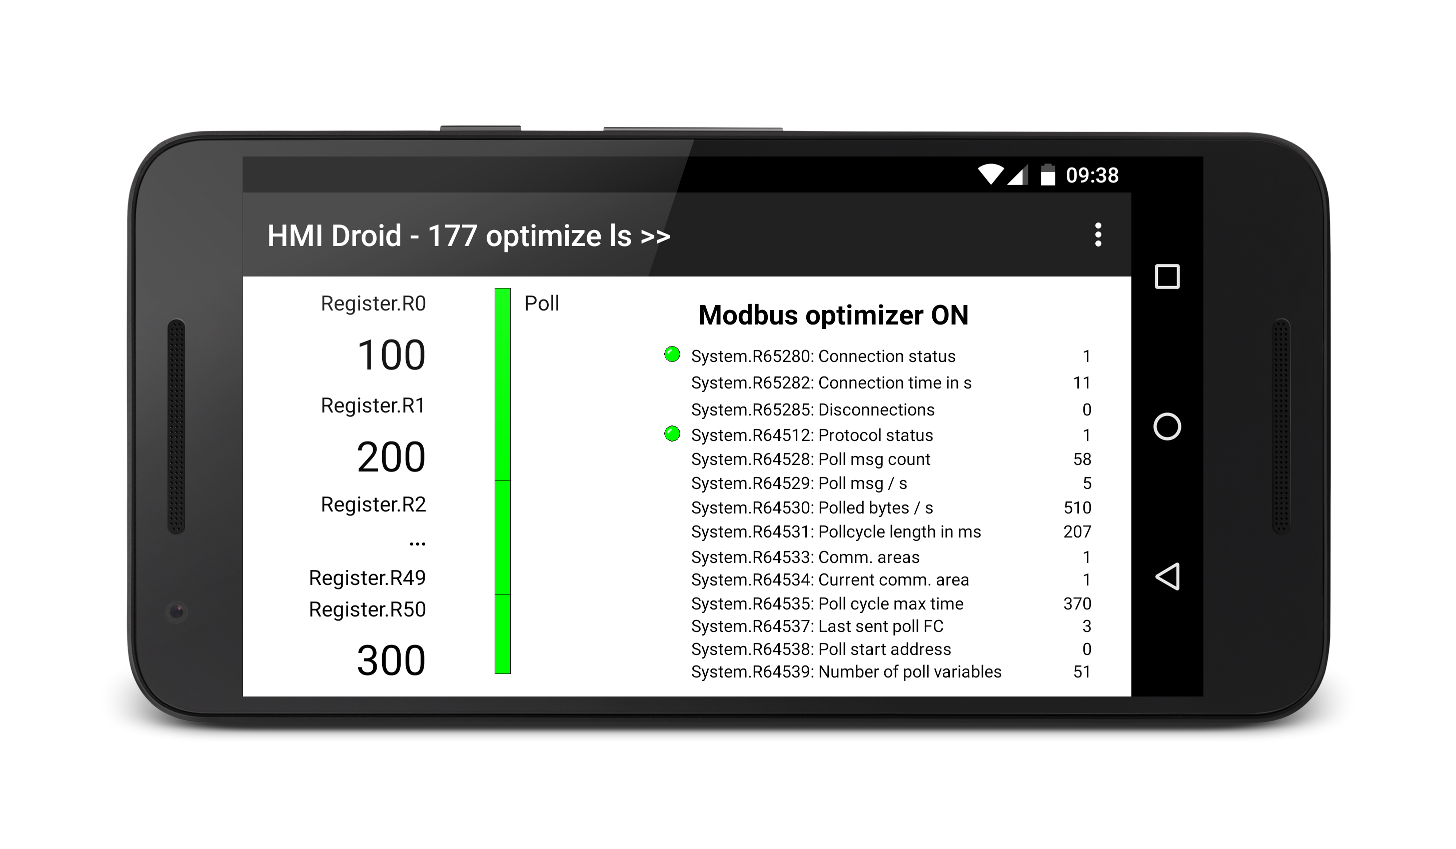 HMI Droid - Optimizer on